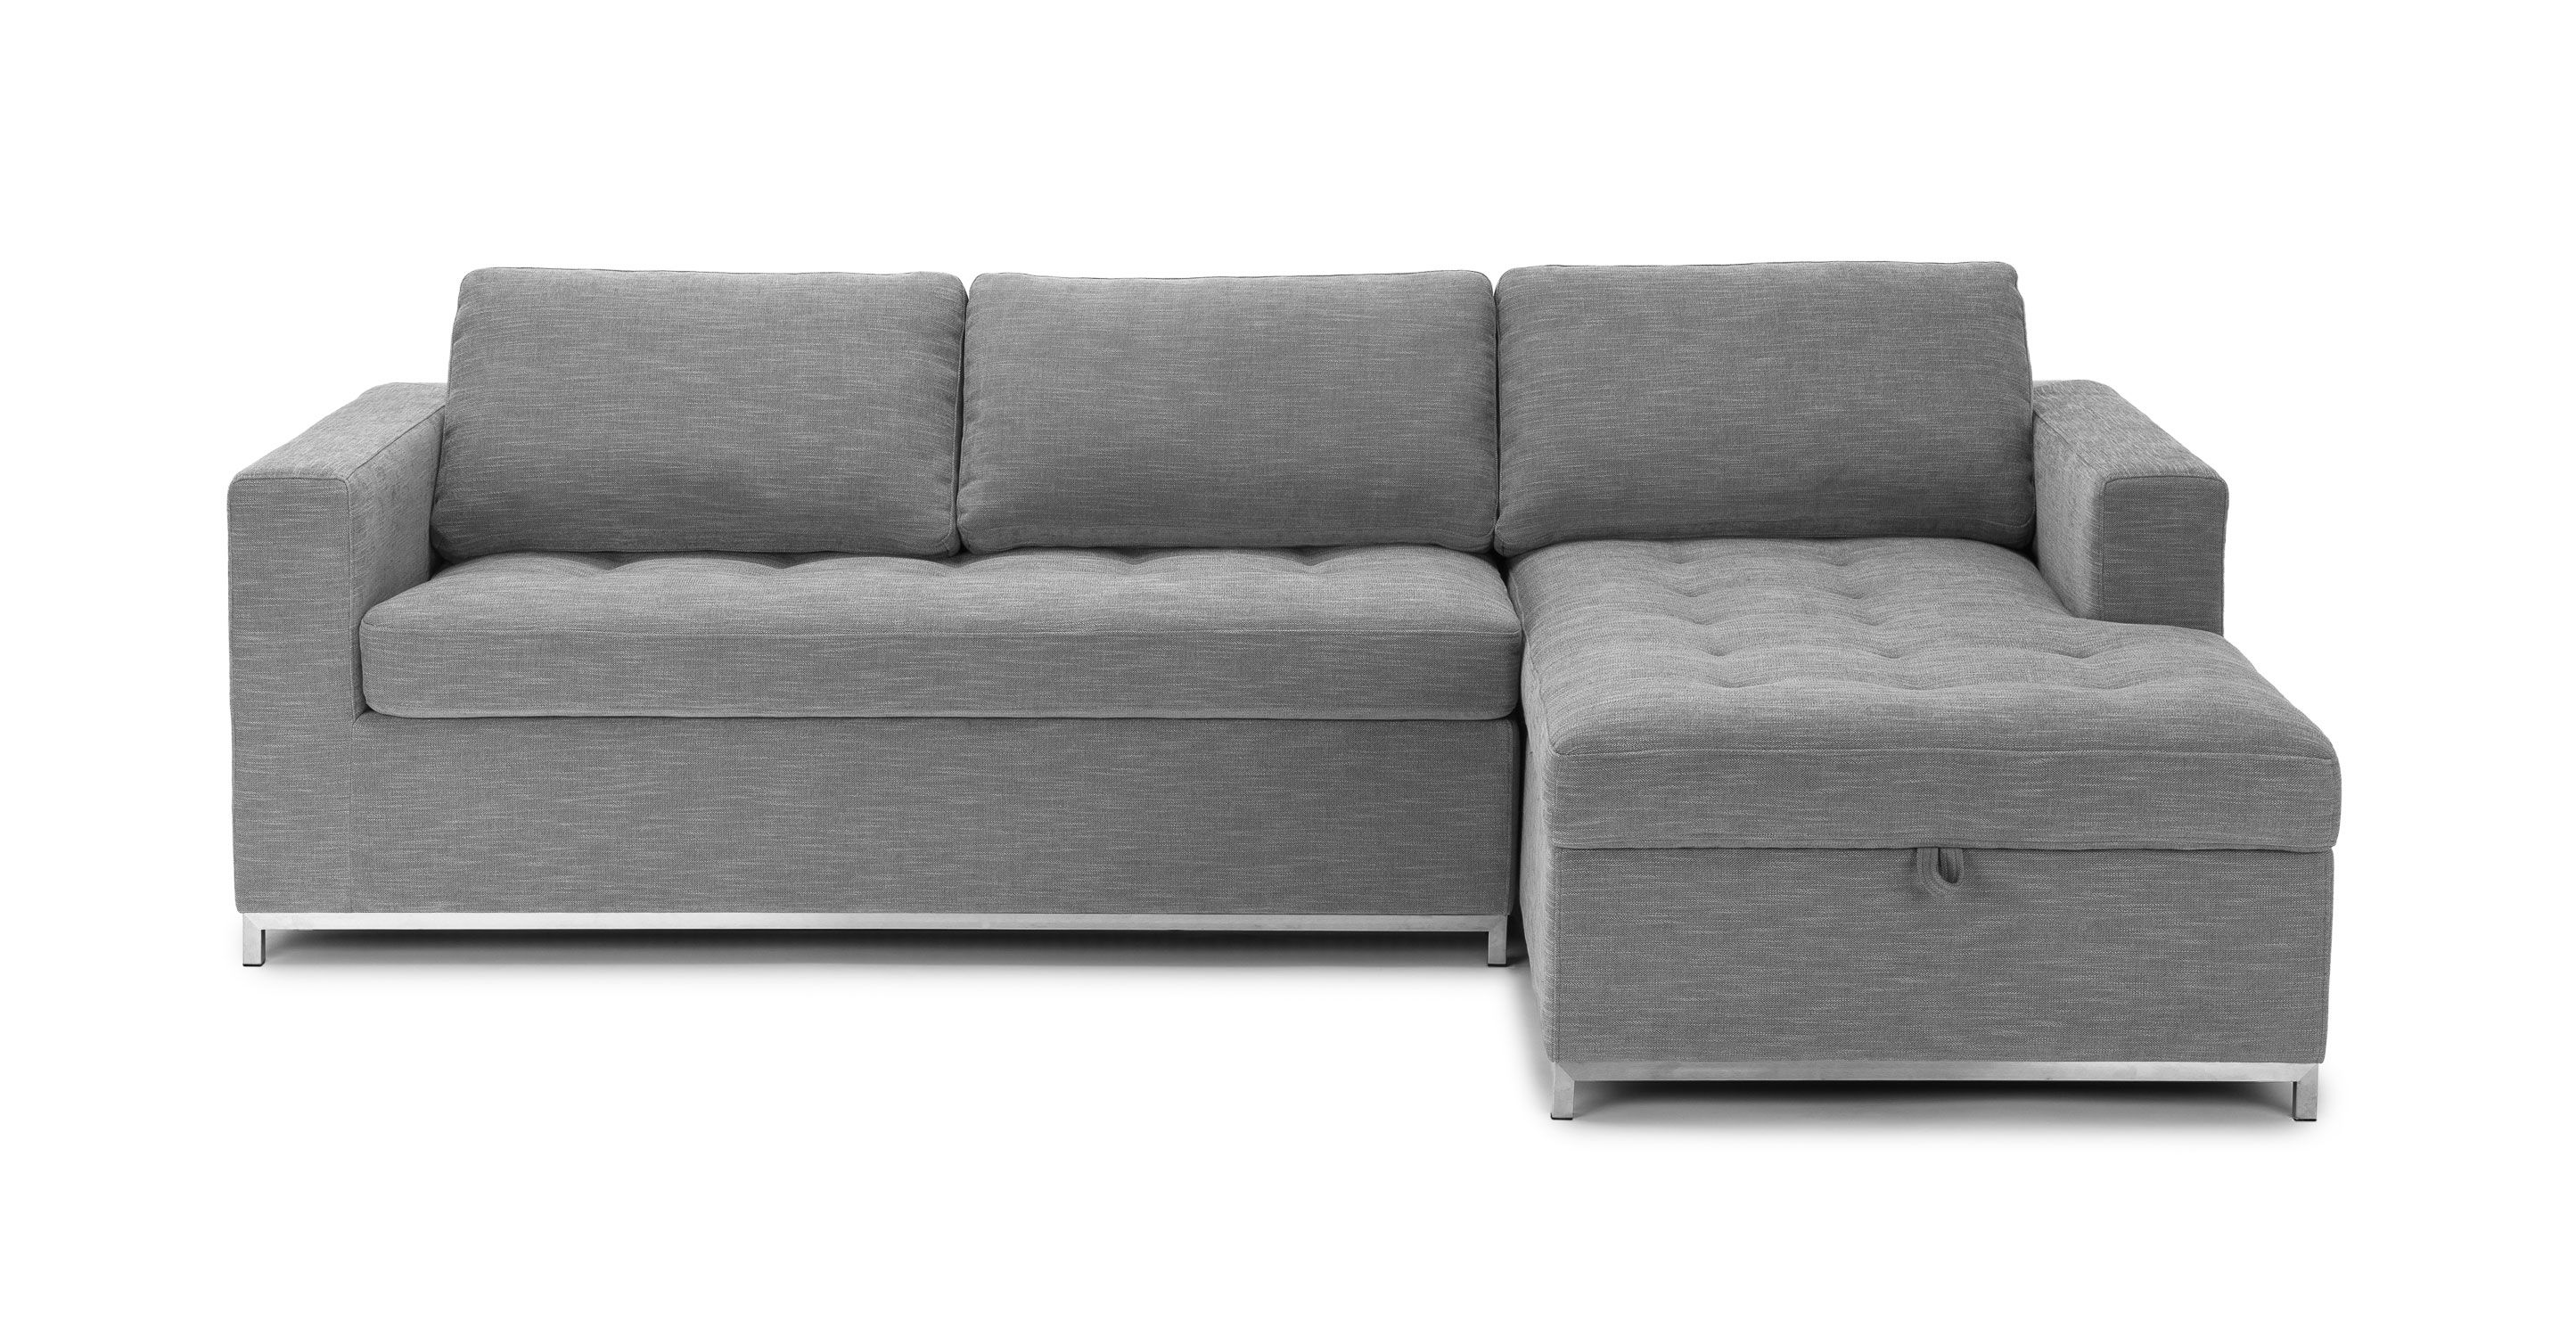 Gray Sofa Bed Right Sectional Metal Legs